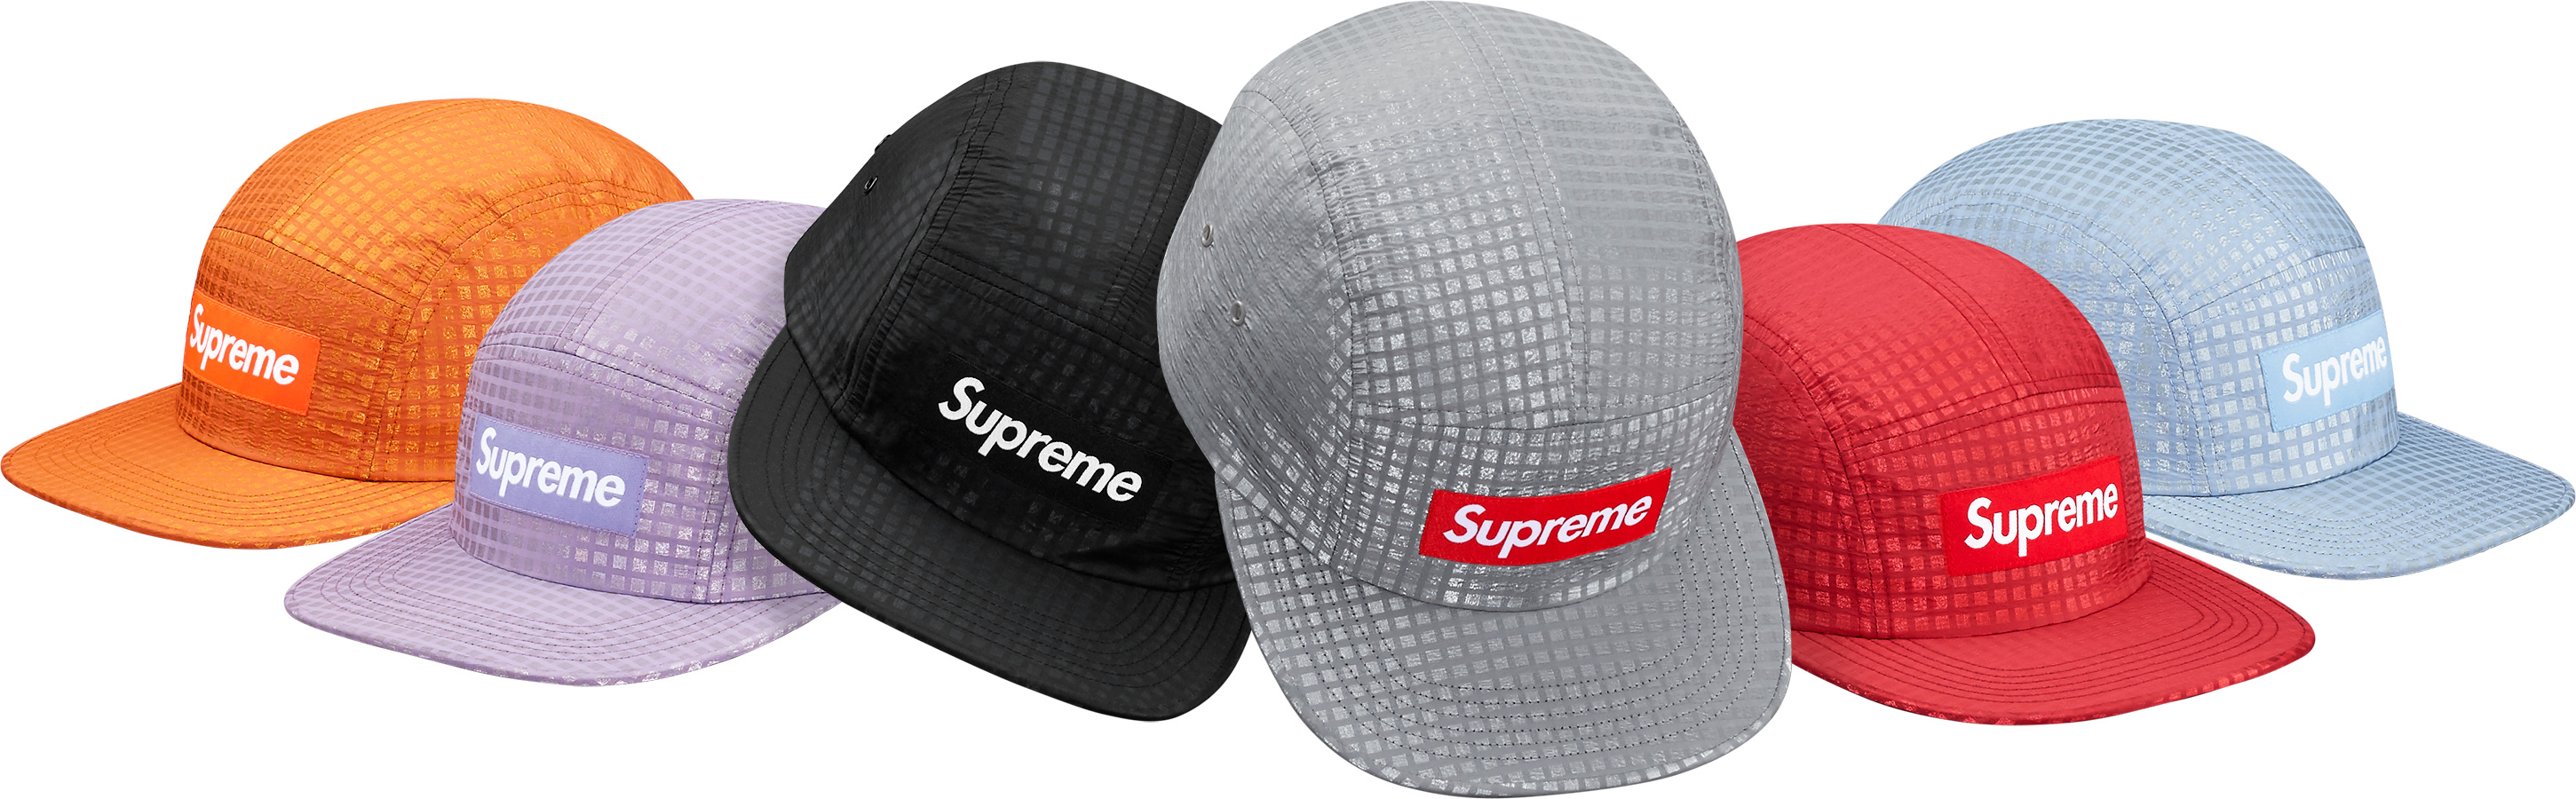 supreme-online-store-201706-week-release-items